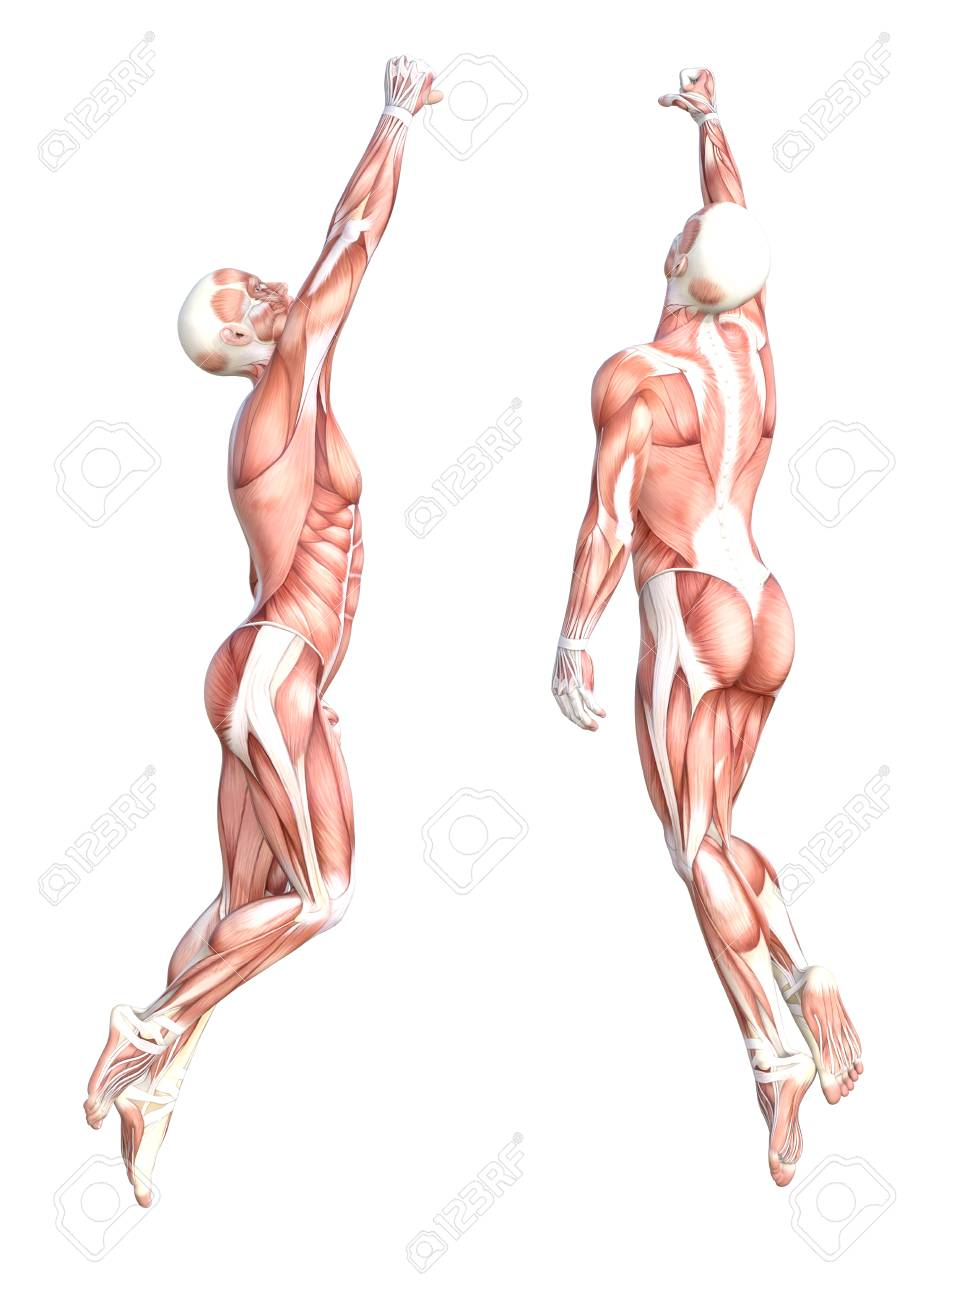 Conceptual Anatomy Healthy Skinless Human Body Muscle System.. Stock ...